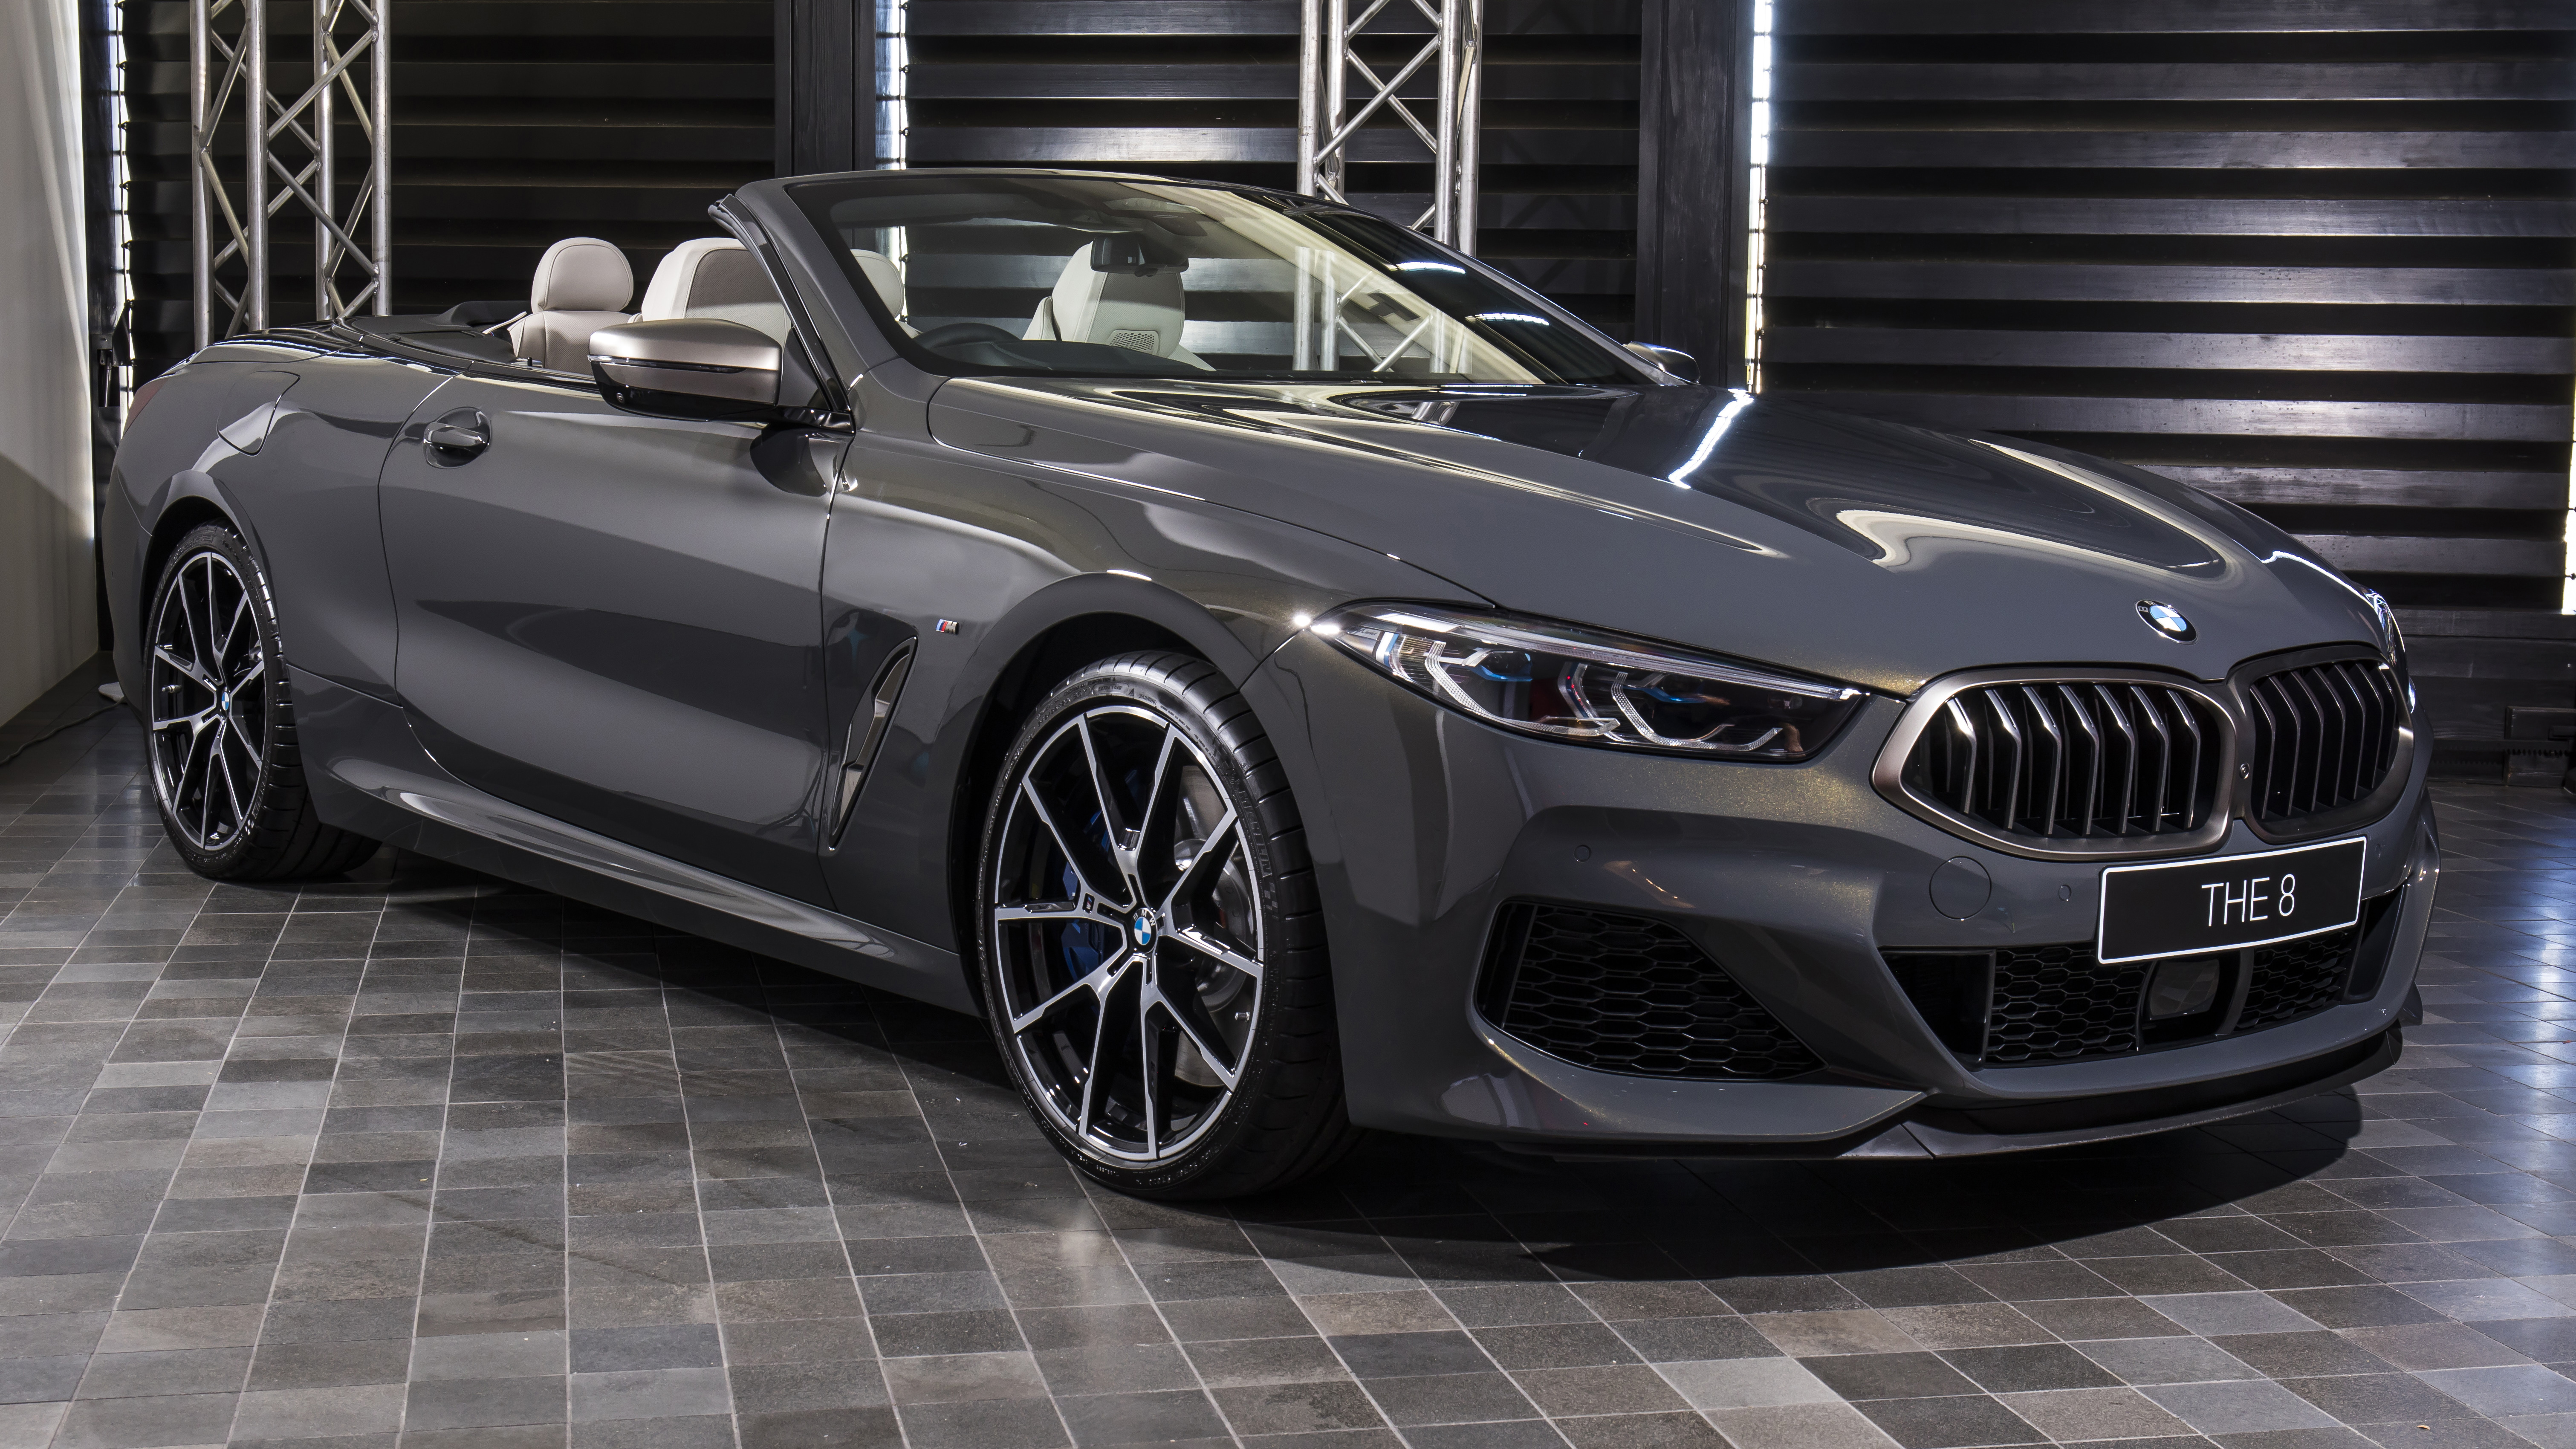 2019 Bmw M850i Pricing And Specs Caradvice